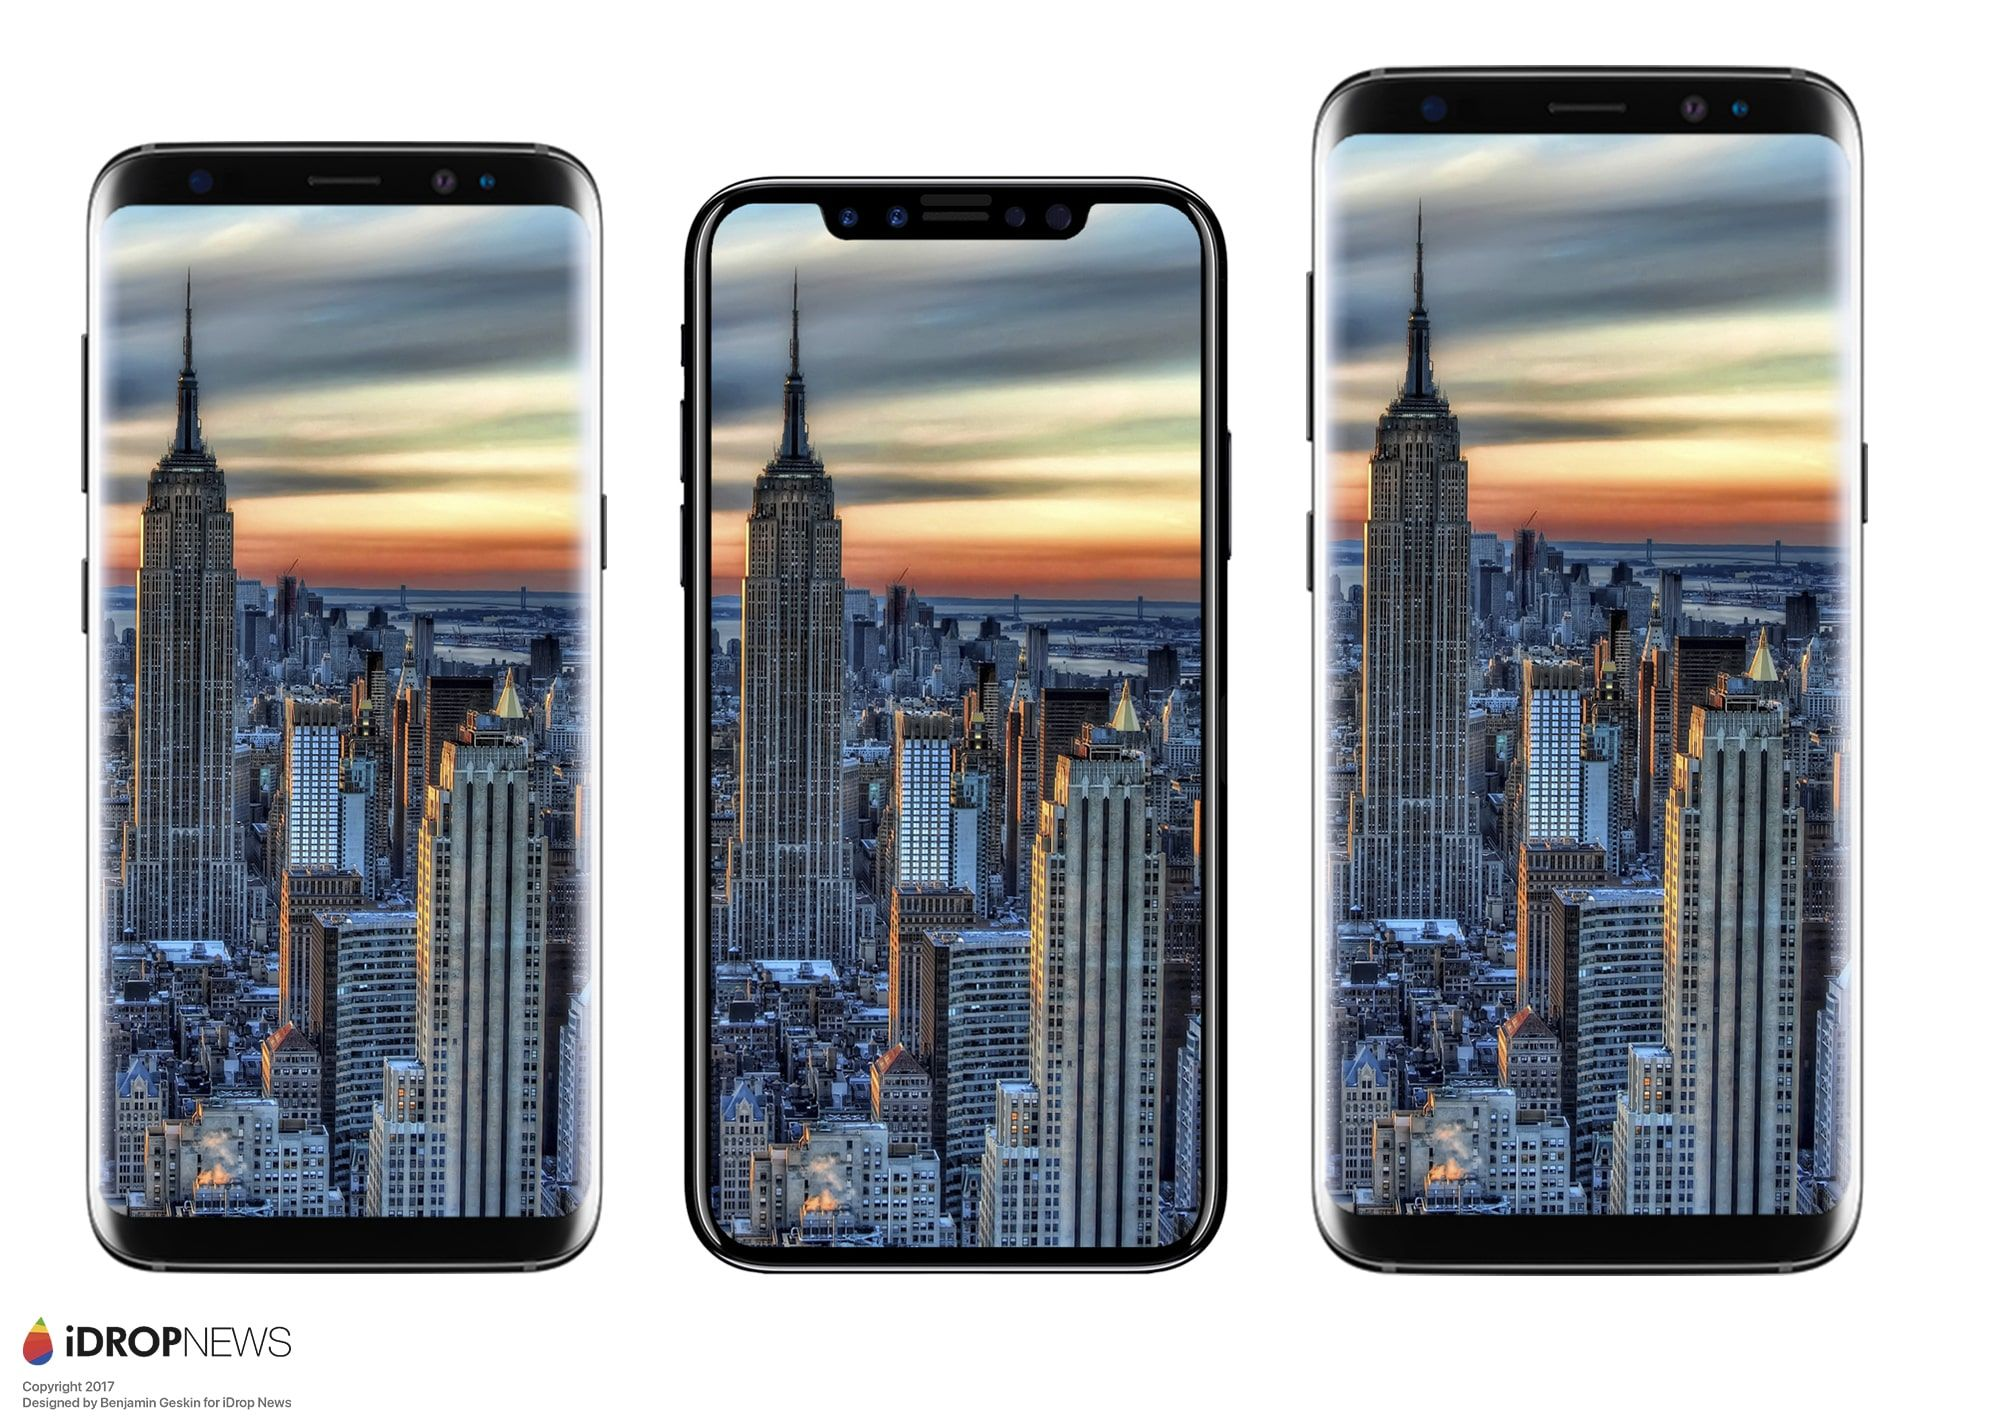 iPhone 8 vs. Samsung Galaxy S8 and S8+